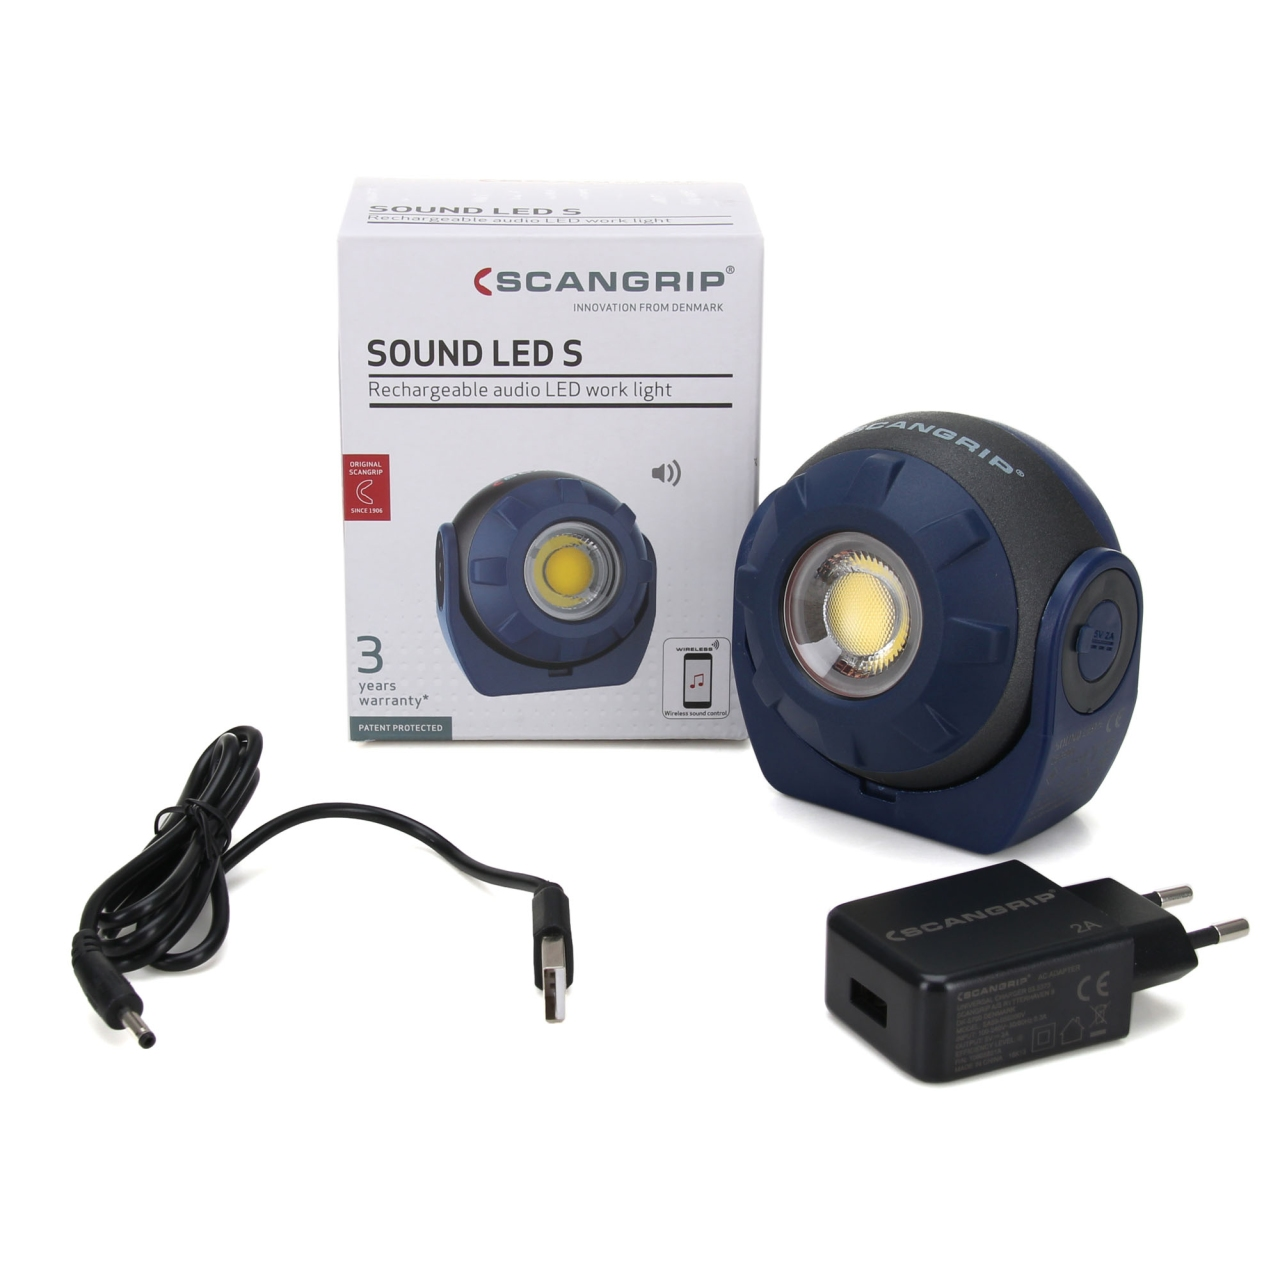 SCANGRIP SOUND LED S 03.5900